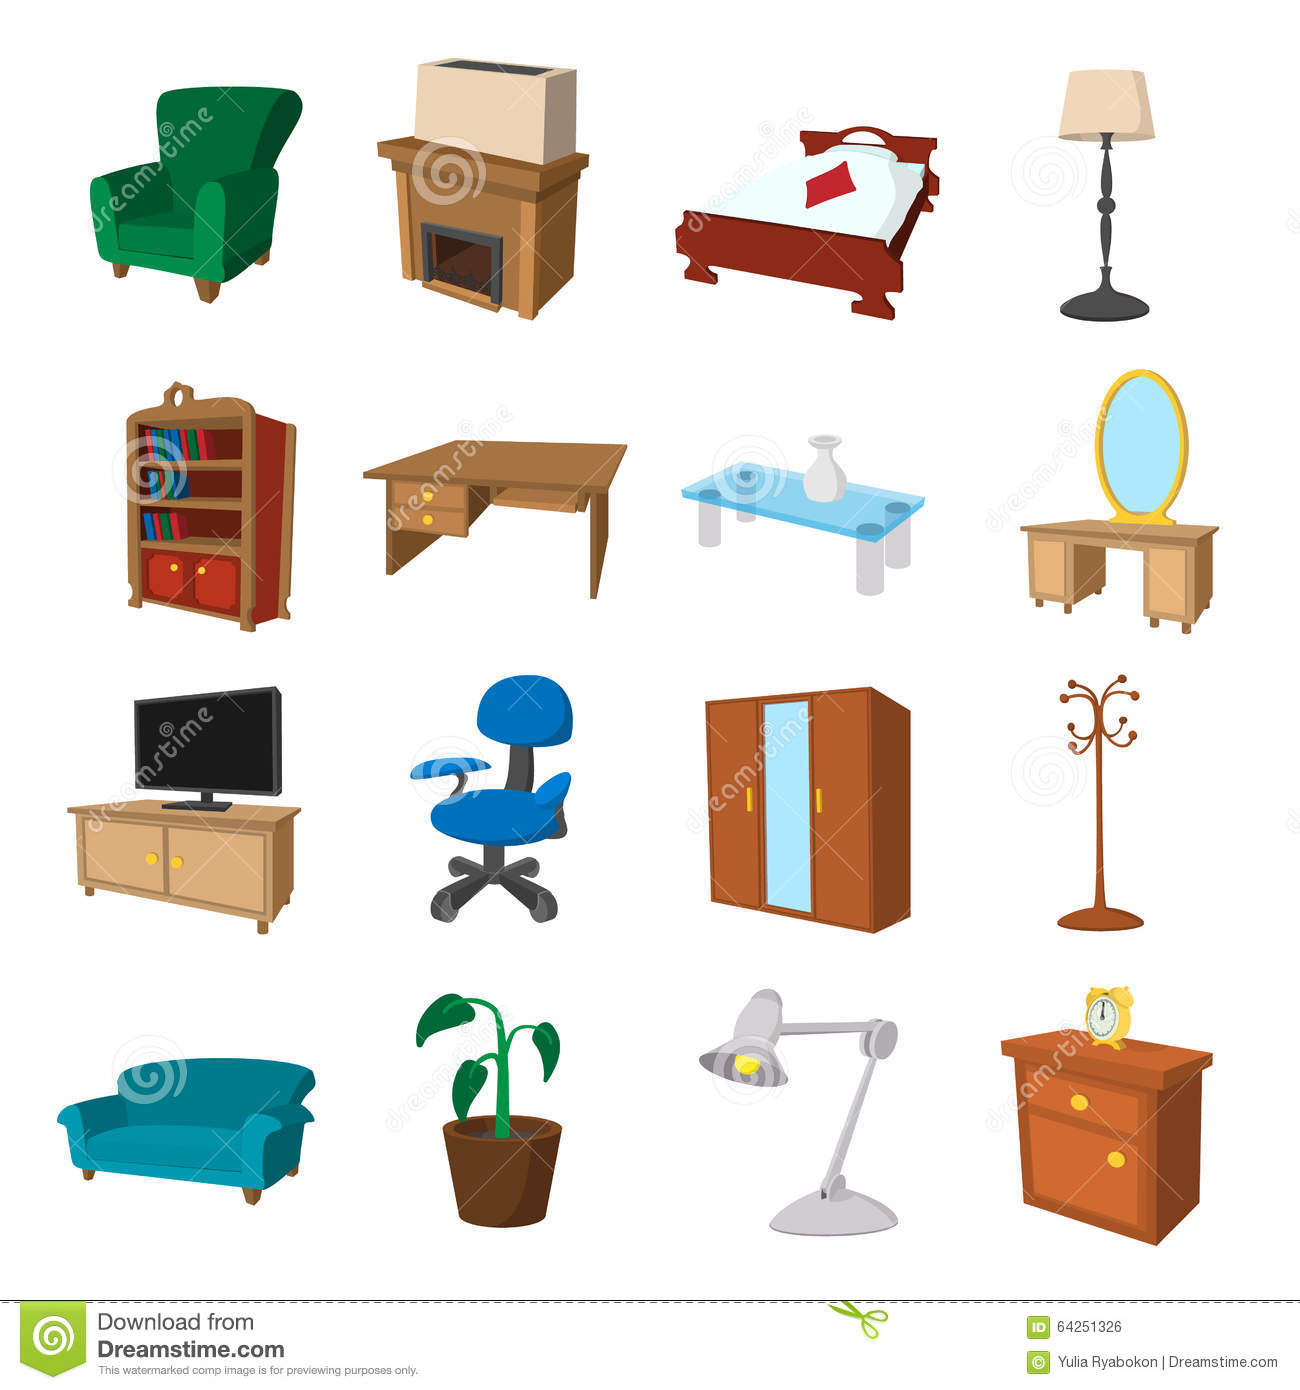 Furniture Cartoon Icons Set Stock Vector - Image: 64251326